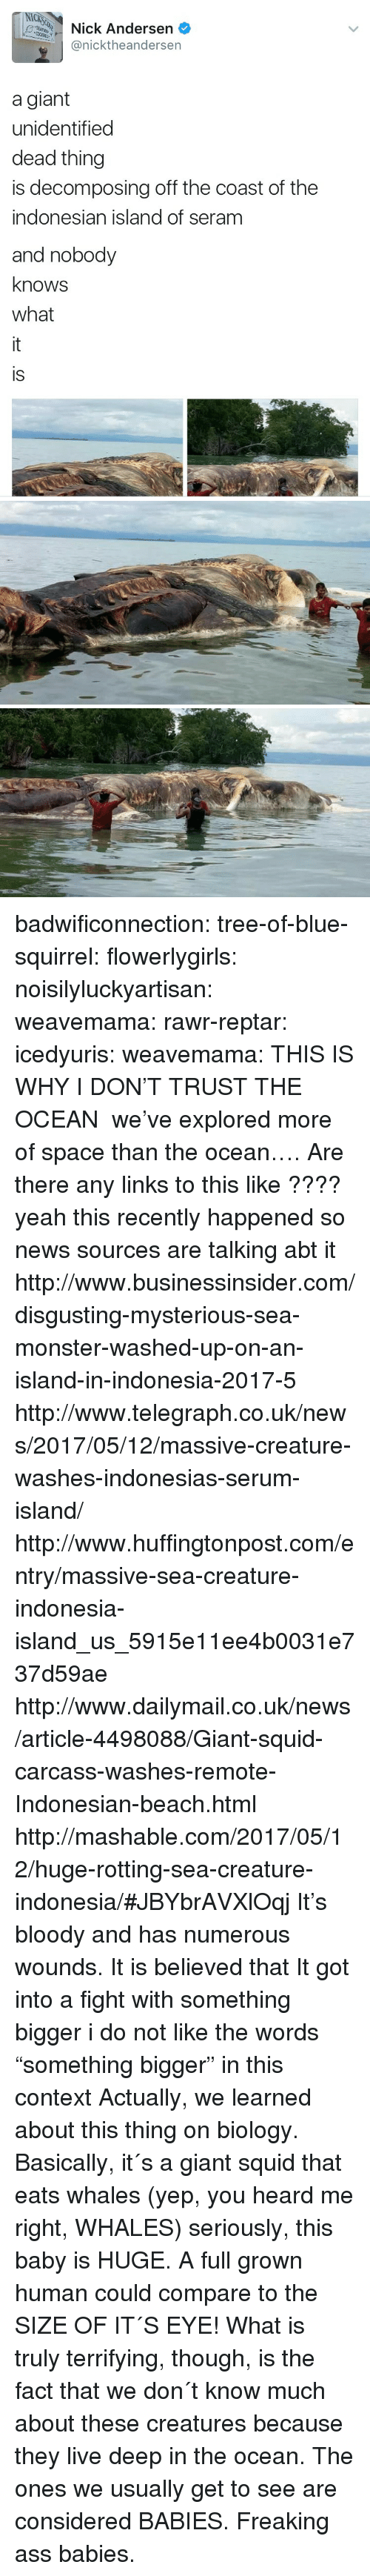 "Indonesian: NIC  Nick Andersen  @nicktheandersen  a giant  unidentified  dead thing  is decomposing off the coast of the  indonesian island of seram  and nobody  knows  what  is badwificonnection:  tree-of-blue-squirrel:   flowerlygirls:  noisilyluckyartisan:   weavemama:   rawr-reptar:  icedyuris:   weavemama: THIS IS WHY I DON'T TRUST THE OCEAN  we've explored more of space than the ocean….   Are there any links to this like ????  yeah this recently happened so news sources are talking abt it http://www.businessinsider.com/disgusting-mysterious-sea-monster-washed-up-on-an-island-in-indonesia-2017-5 http://www.telegraph.co.uk/news/2017/05/12/massive-creature-washes-indonesias-serum-island/ http://www.huffingtonpost.com/entry/massive-sea-creature-indonesia-island_us_5915e11ee4b0031e737d59ae http://www.dailymail.co.uk/news/article-4498088/Giant-squid-carcass-washes-remote-Indonesian-beach.html http://mashable.com/2017/05/12/huge-rotting-sea-creature-indonesia/#JBYbrAVXlOqj   It's bloody and has numerous wounds. It is believed that It got into a fight with something bigger   i do not like the words ""something bigger"" in this context  Actually, we learned about this thing on biology. Basically, it´s a giant squid that eats whales (yep, you heard me right, WHALES) seriously, this baby is HUGE. A full grown human could compare to the SIZE OF IT´S EYE! What is truly terrifying, though, is the fact that we don´t know much about these creatures because they live deep in the ocean. The ones we usually get to see are considered BABIES. Freaking ass babies."